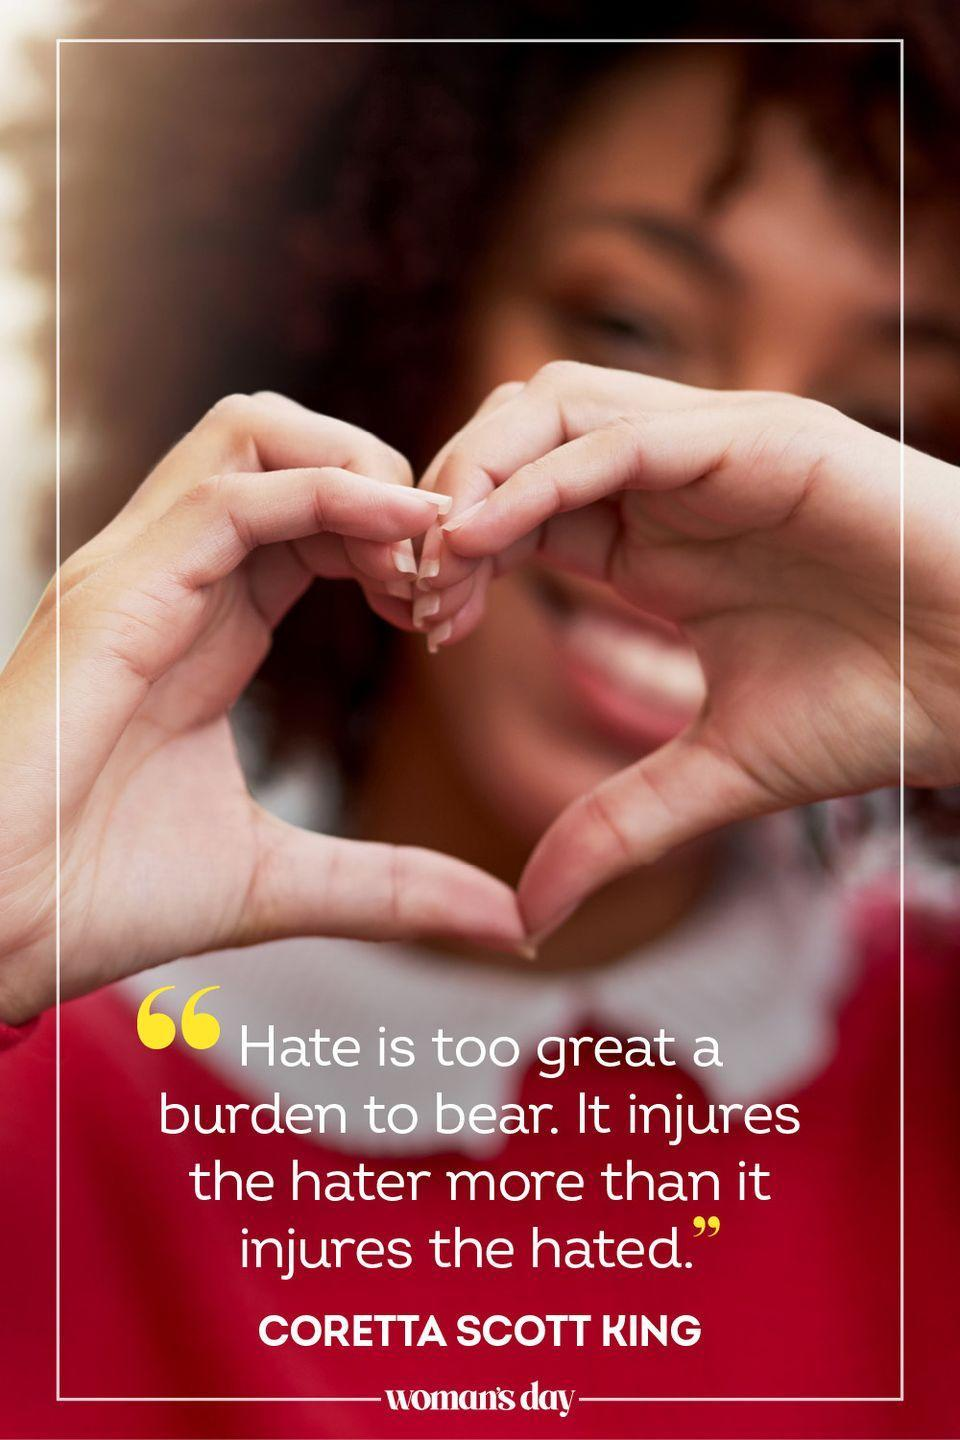 """<p>""""Hate is too great a burden to bear. It injures the hater more than it injures the hated."""" — Coretta Scott King</p>"""